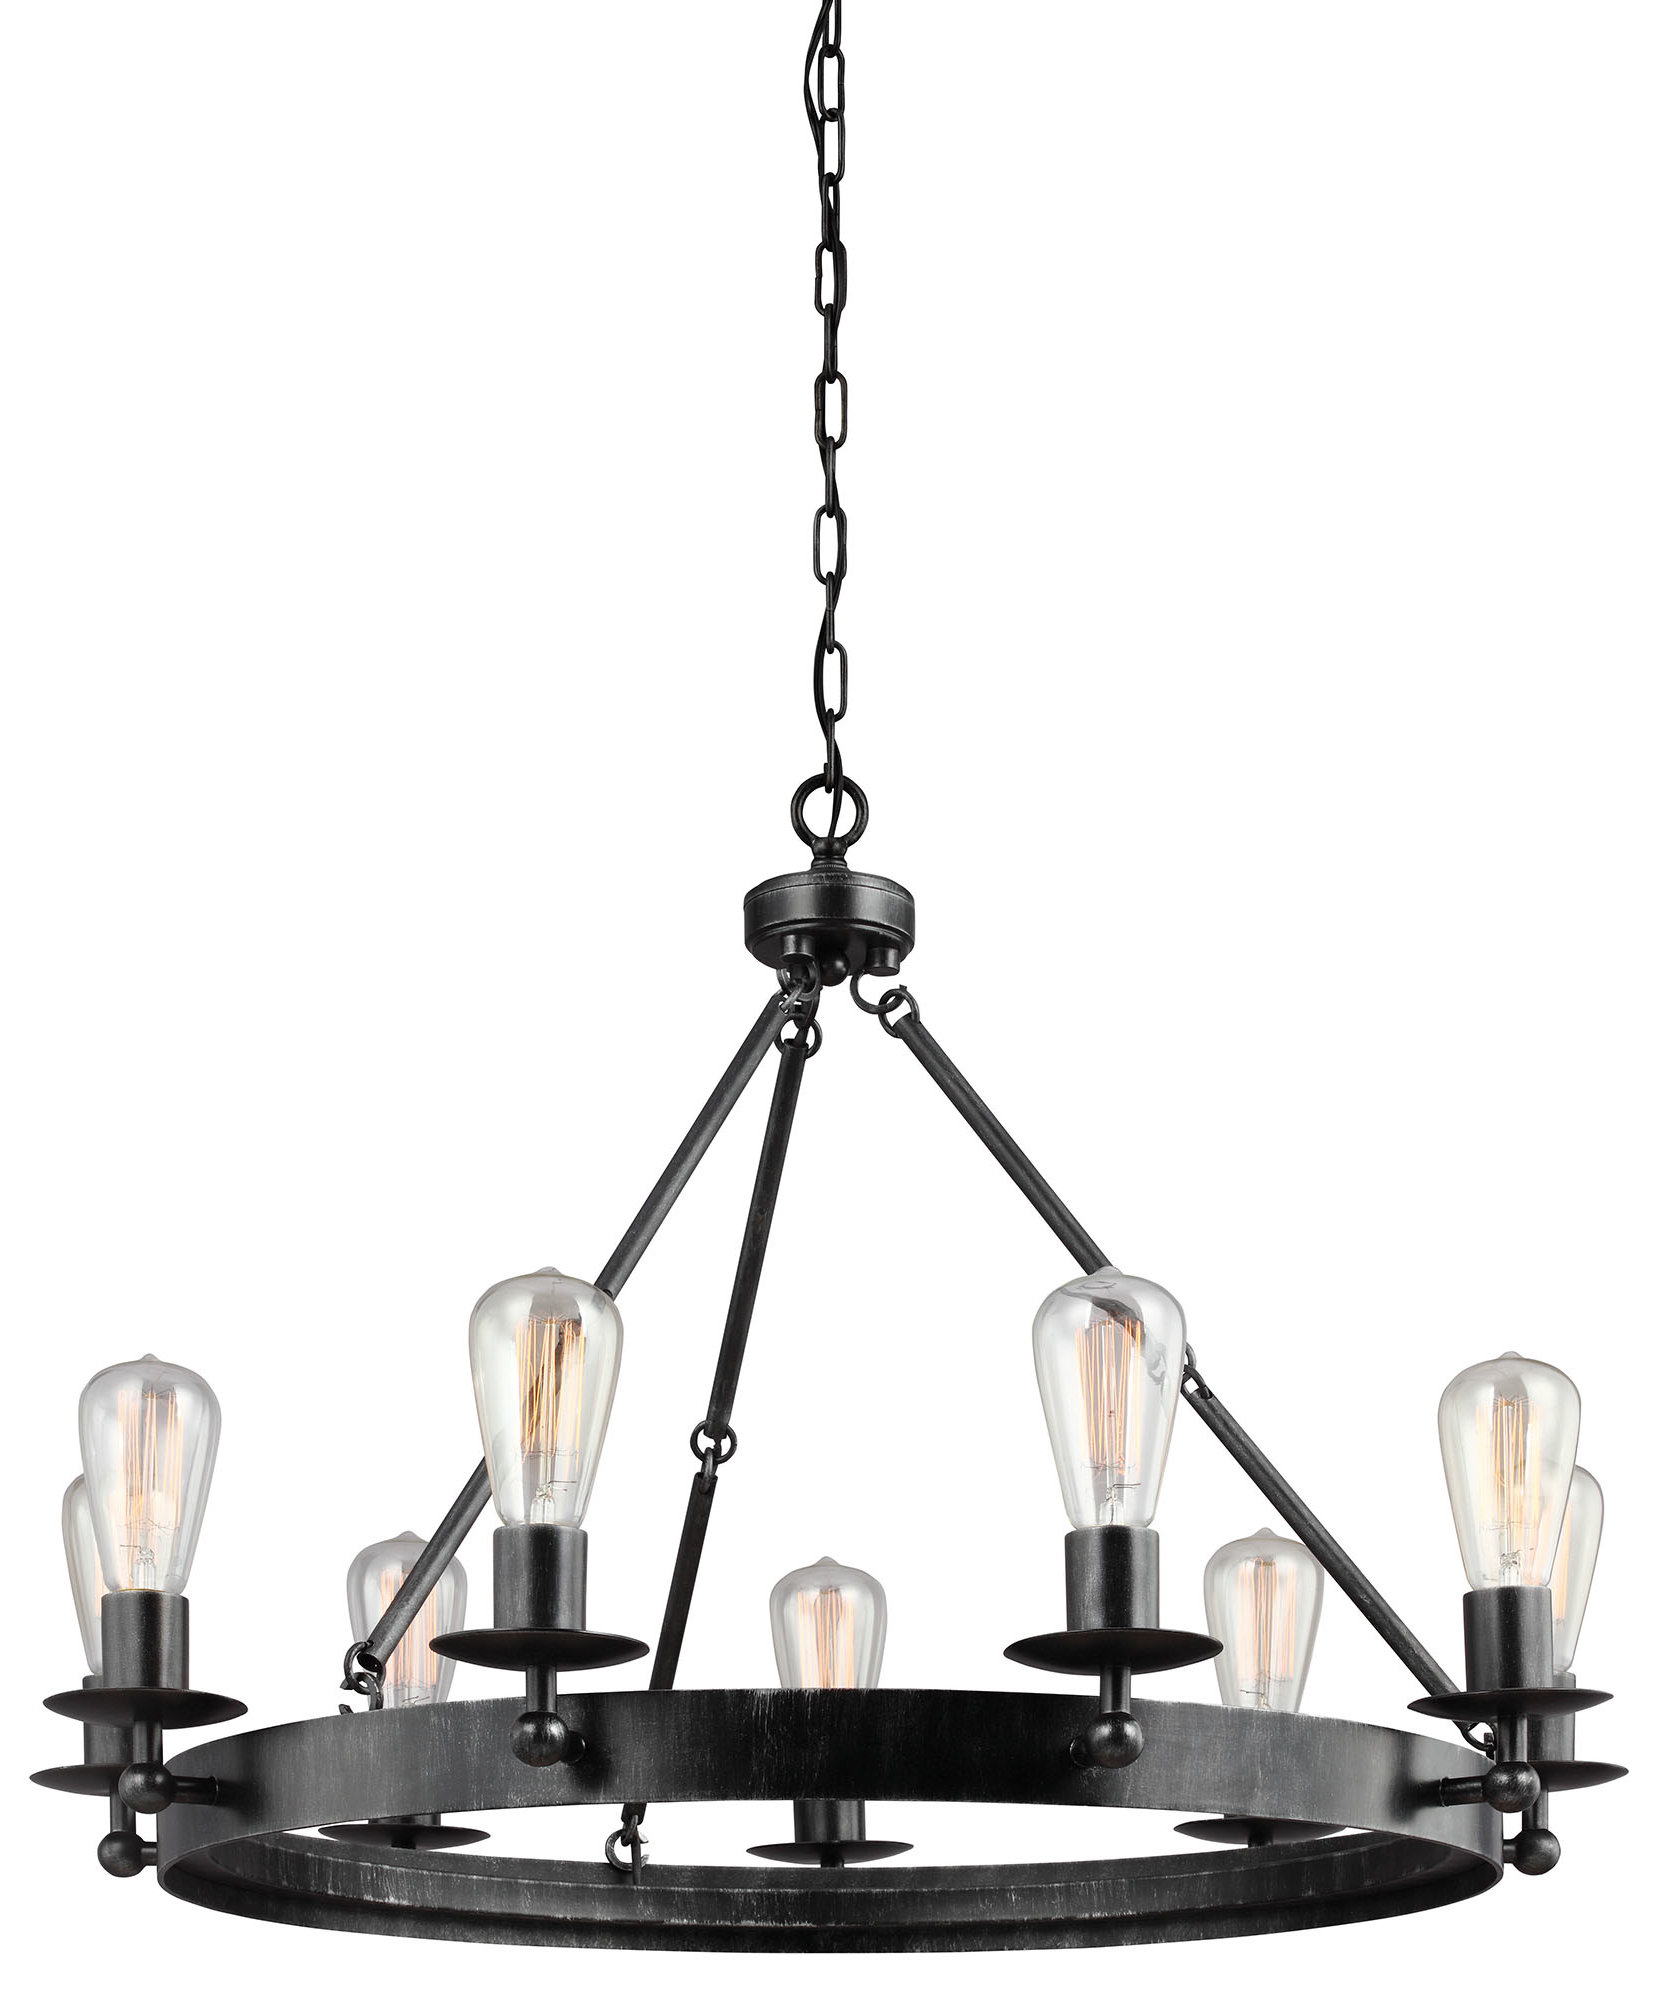 Farmhouse & Rustic Trent Austin Design Chandeliers | Birch Lane In Alayna 4 Light Shaded Chandeliers (Image 15 of 30)